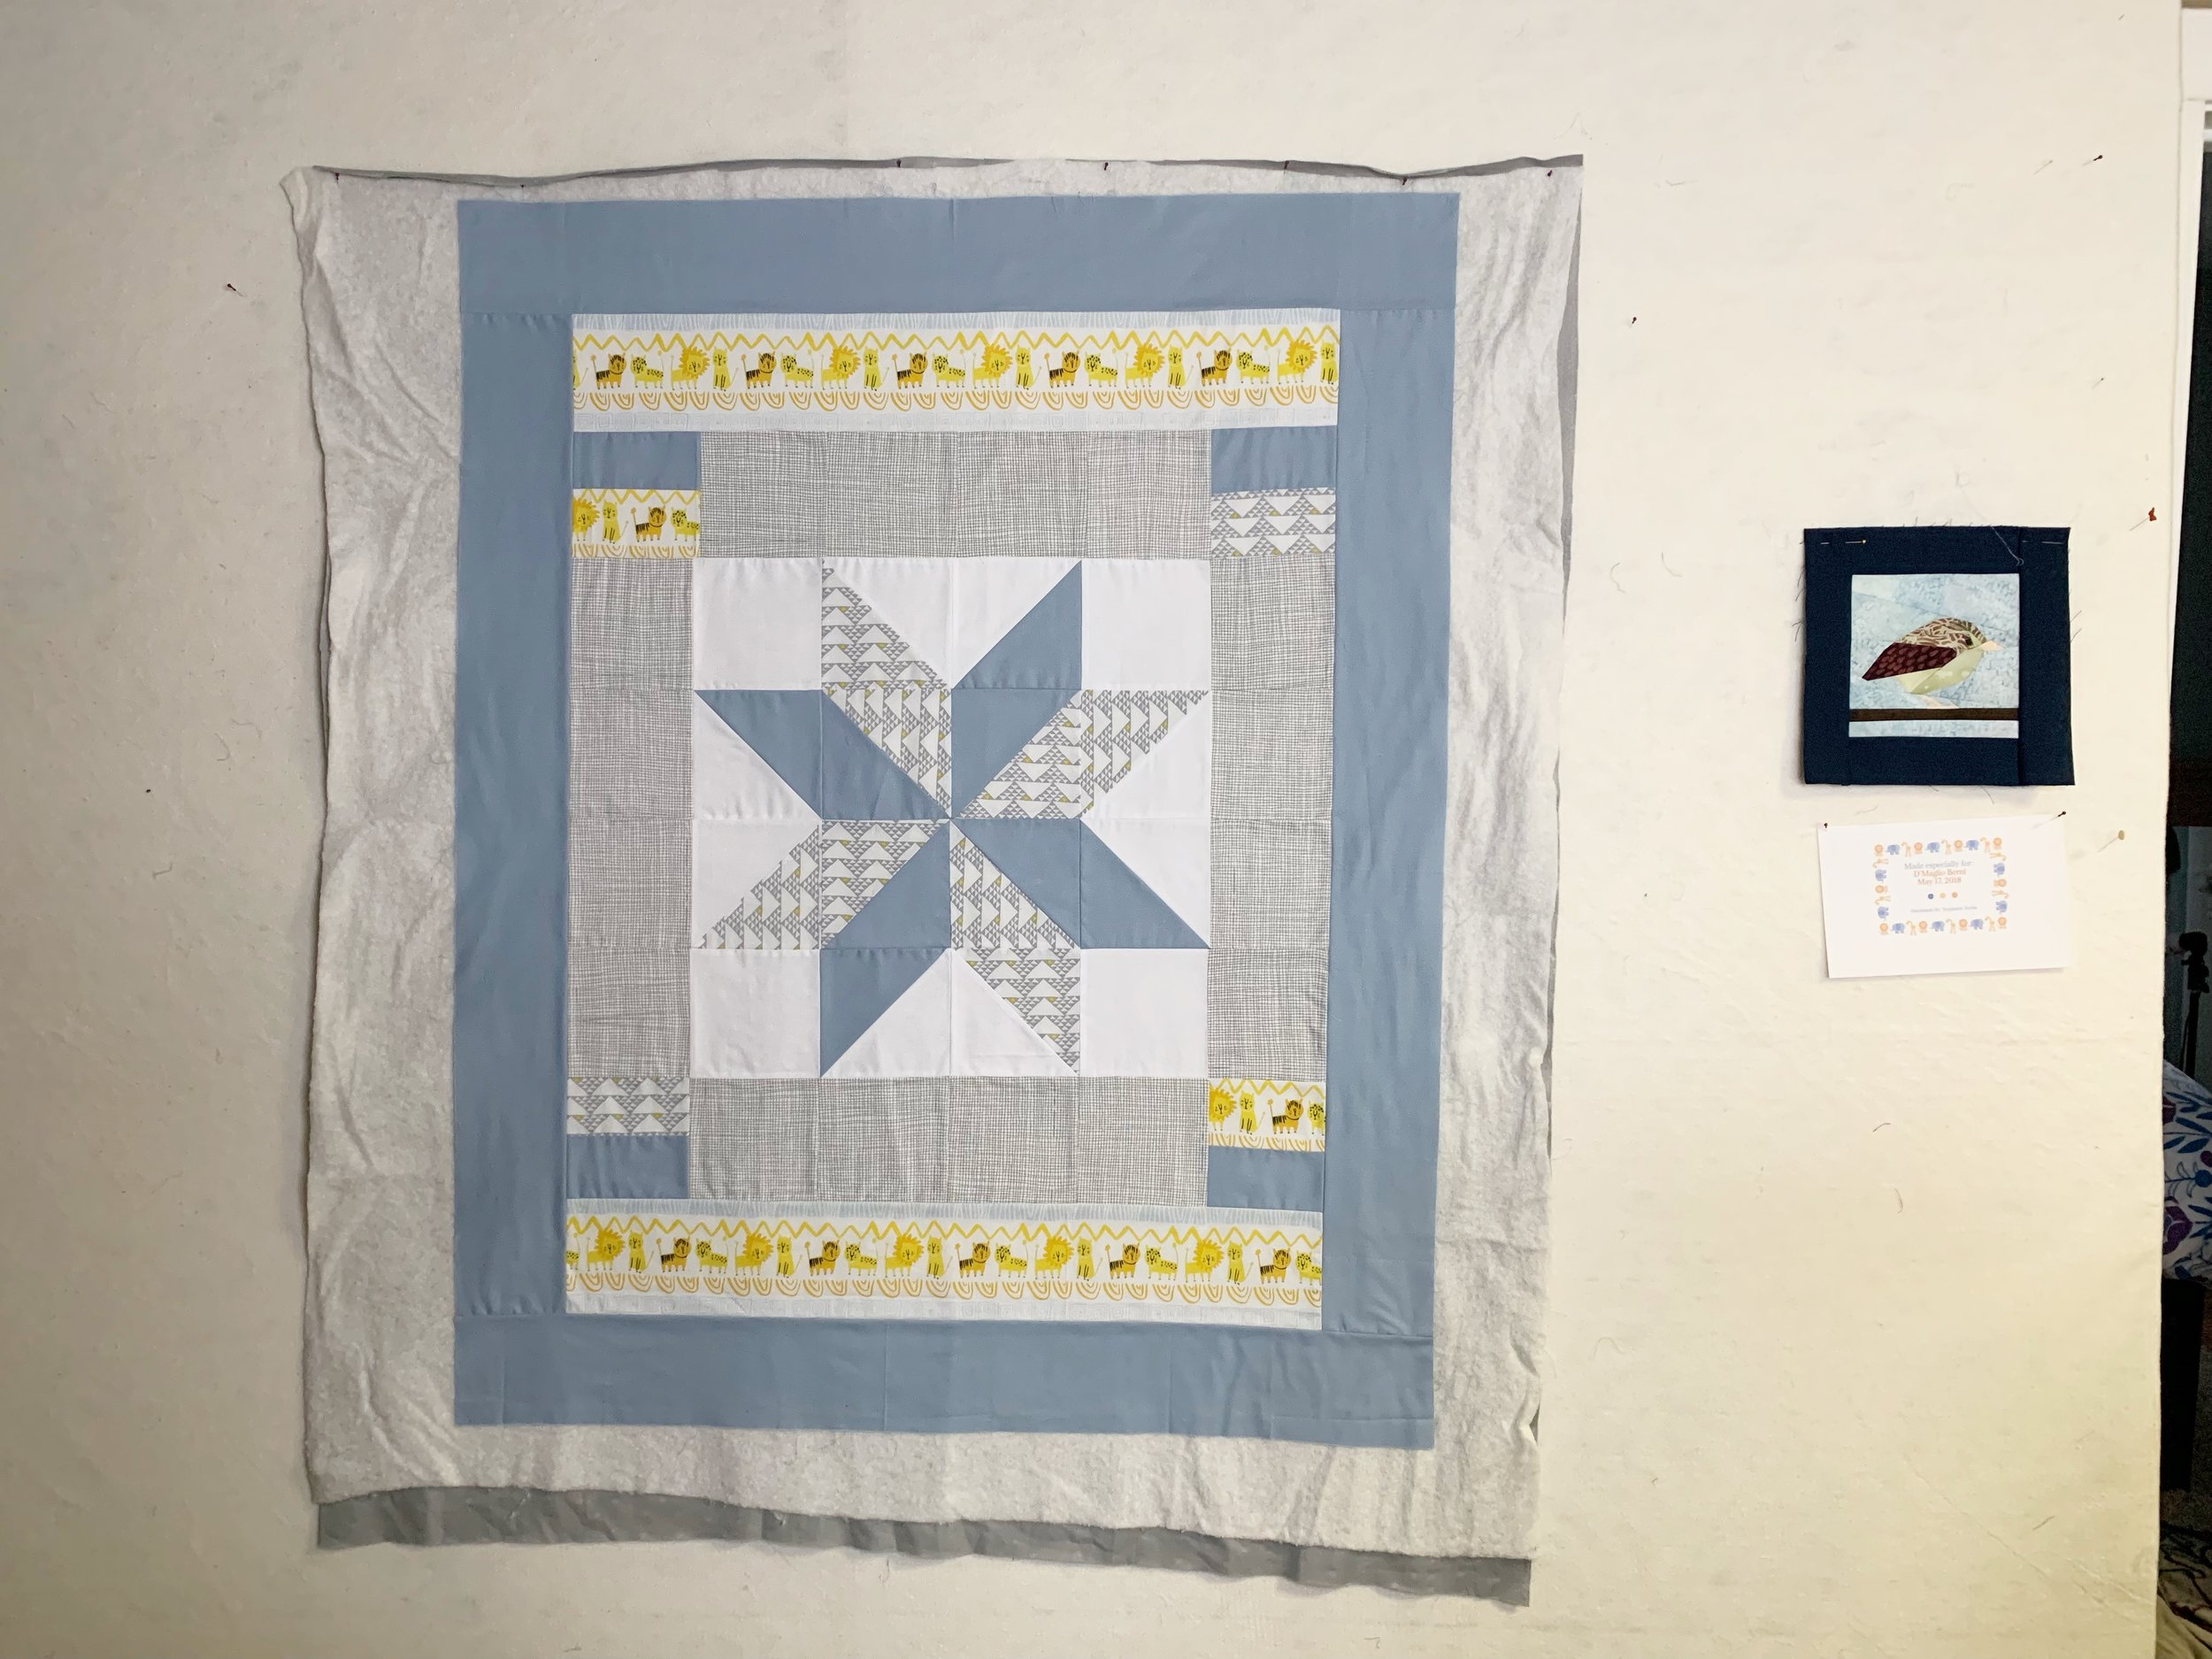 Baby Quilt I am working on. This is my design wall, and I spray basted the top to the batting very easy this way. I really love Hobbs cotton/poly blend batting for baby quilts - (I have no affiliate or sponsorship with Hobbs - I just like their batting)